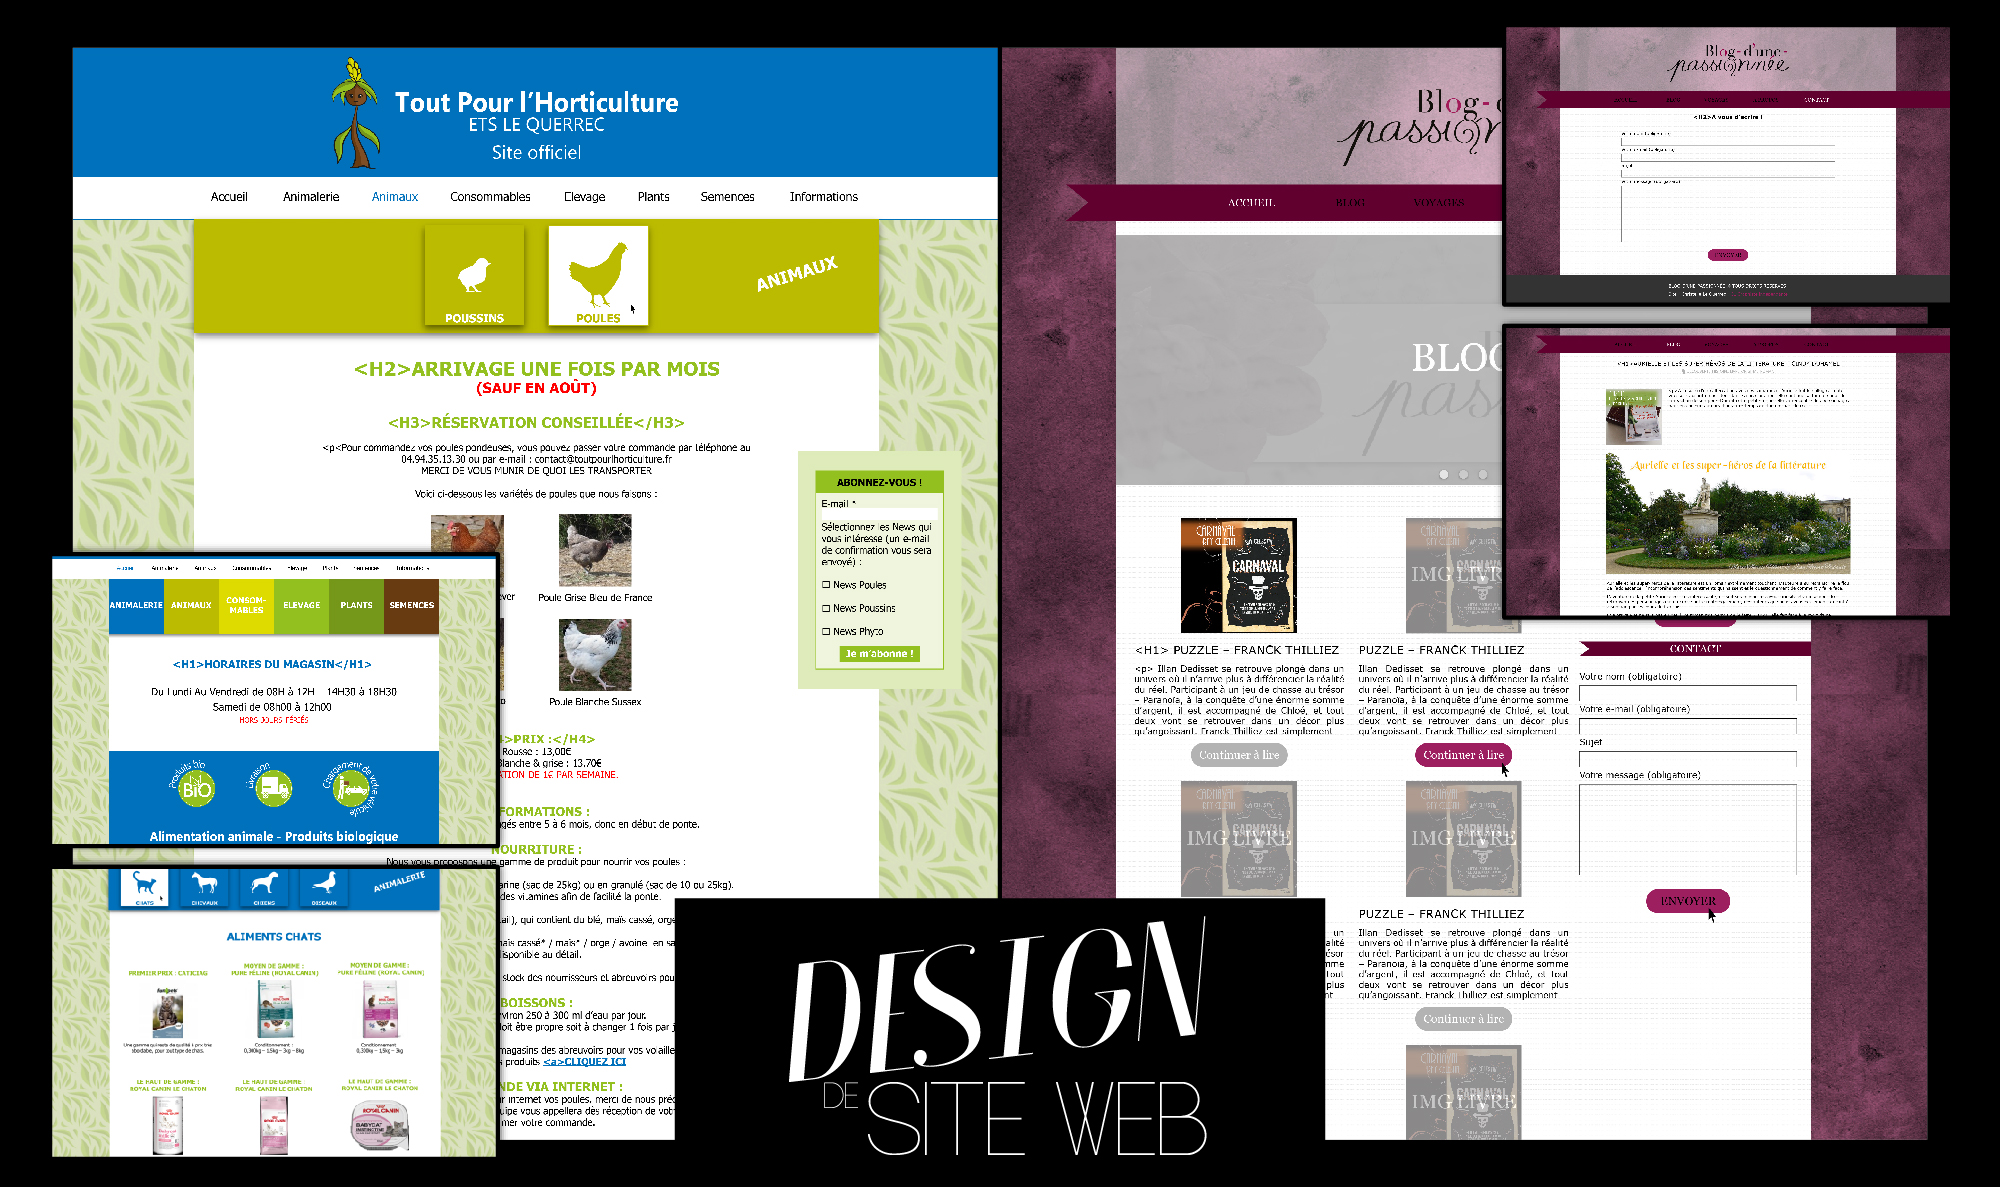 Design site internet - Christelle Le Querrec